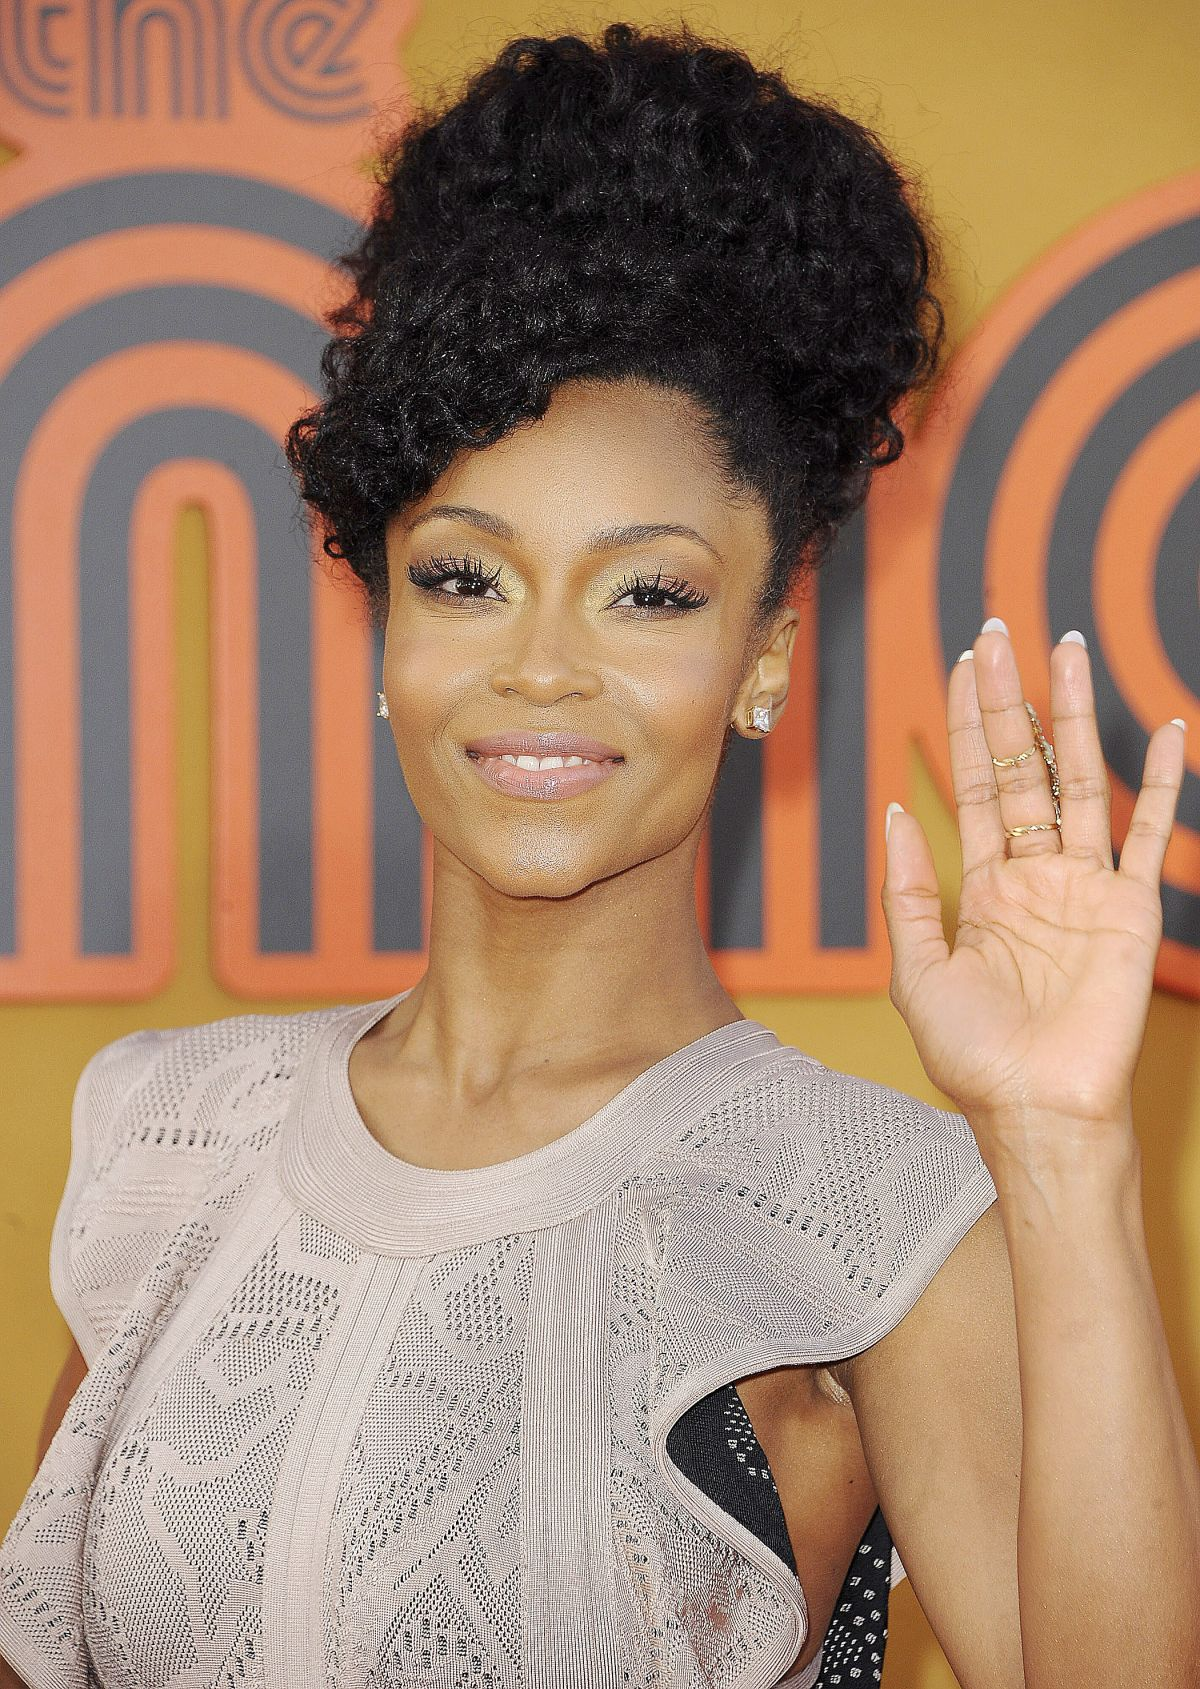 YAYA DACOSTA at 'The Nice Guys' Premiere in Hollywood 05/10/2016 ...